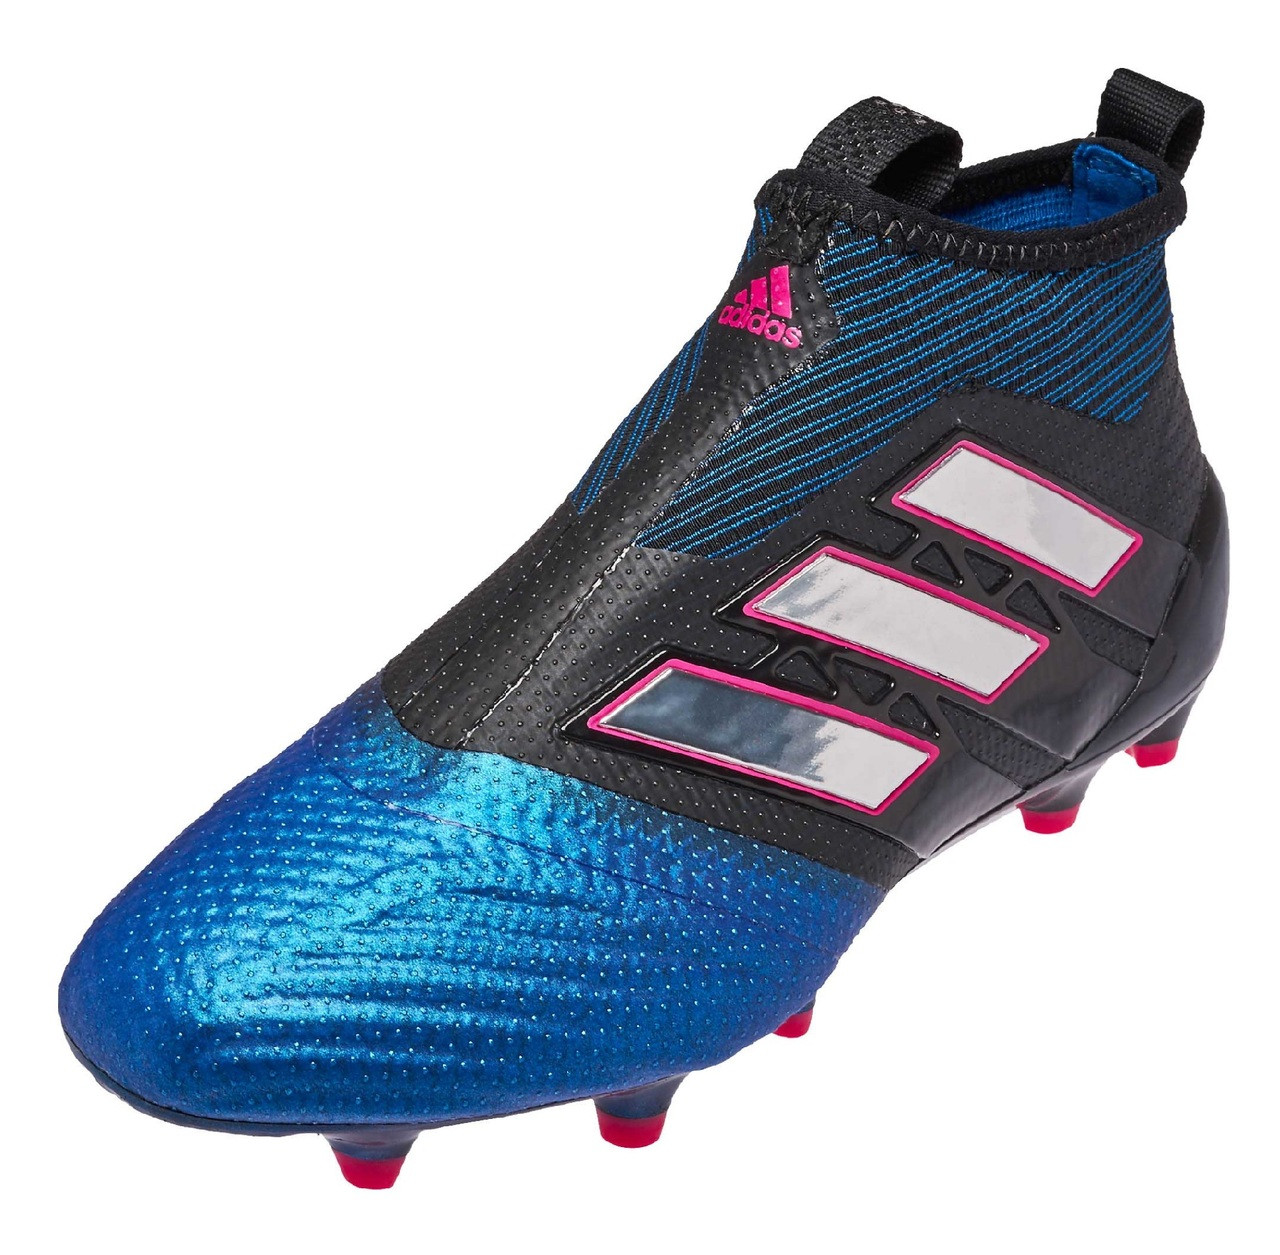 big sale 03b4a 52022 Adidas Ace 17.1 Purecontrol FG Jr - Core Black Cloud White Blue (121518) -  ohp soccer